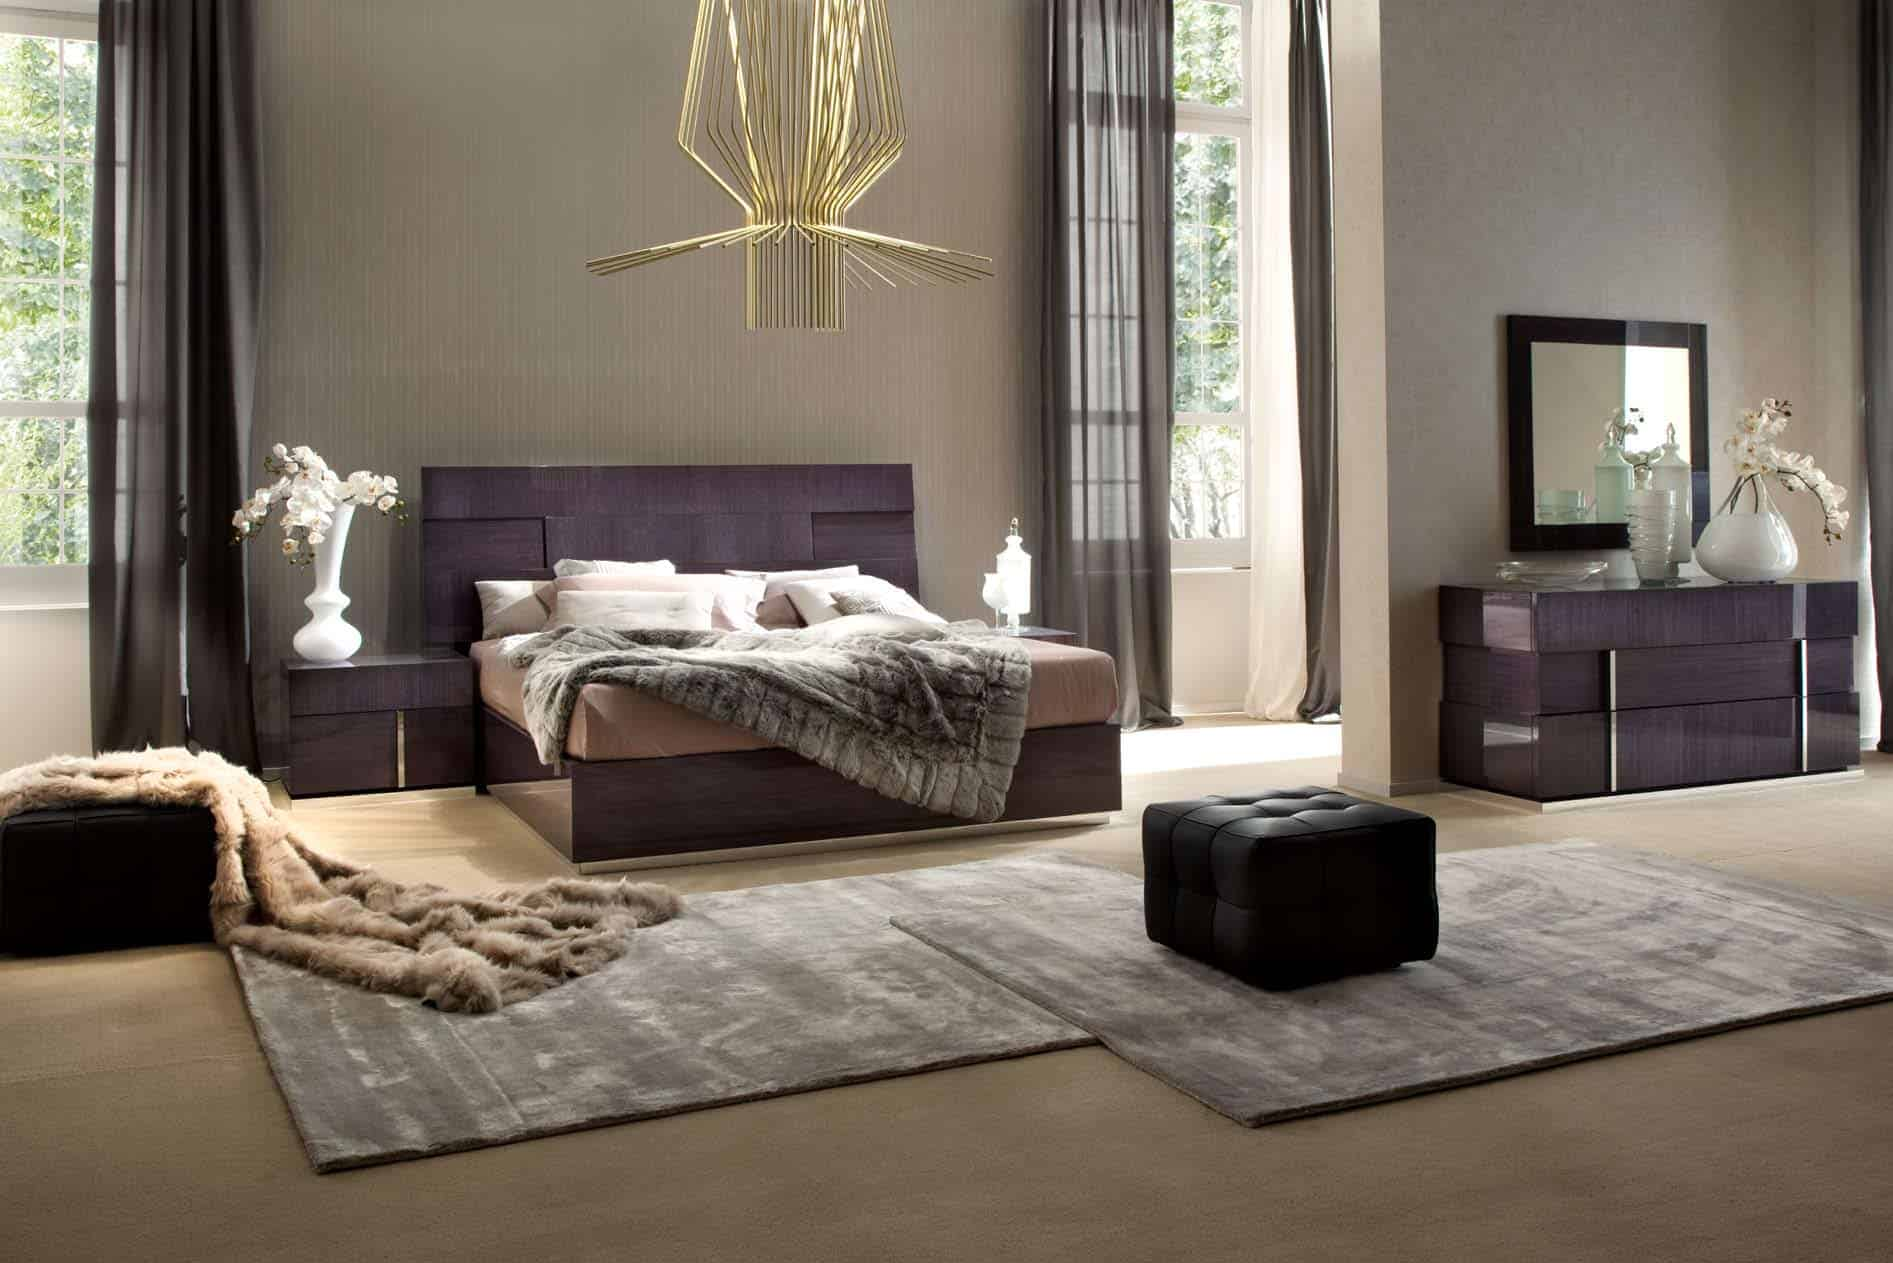 Montecarlo Bedroom Furniture